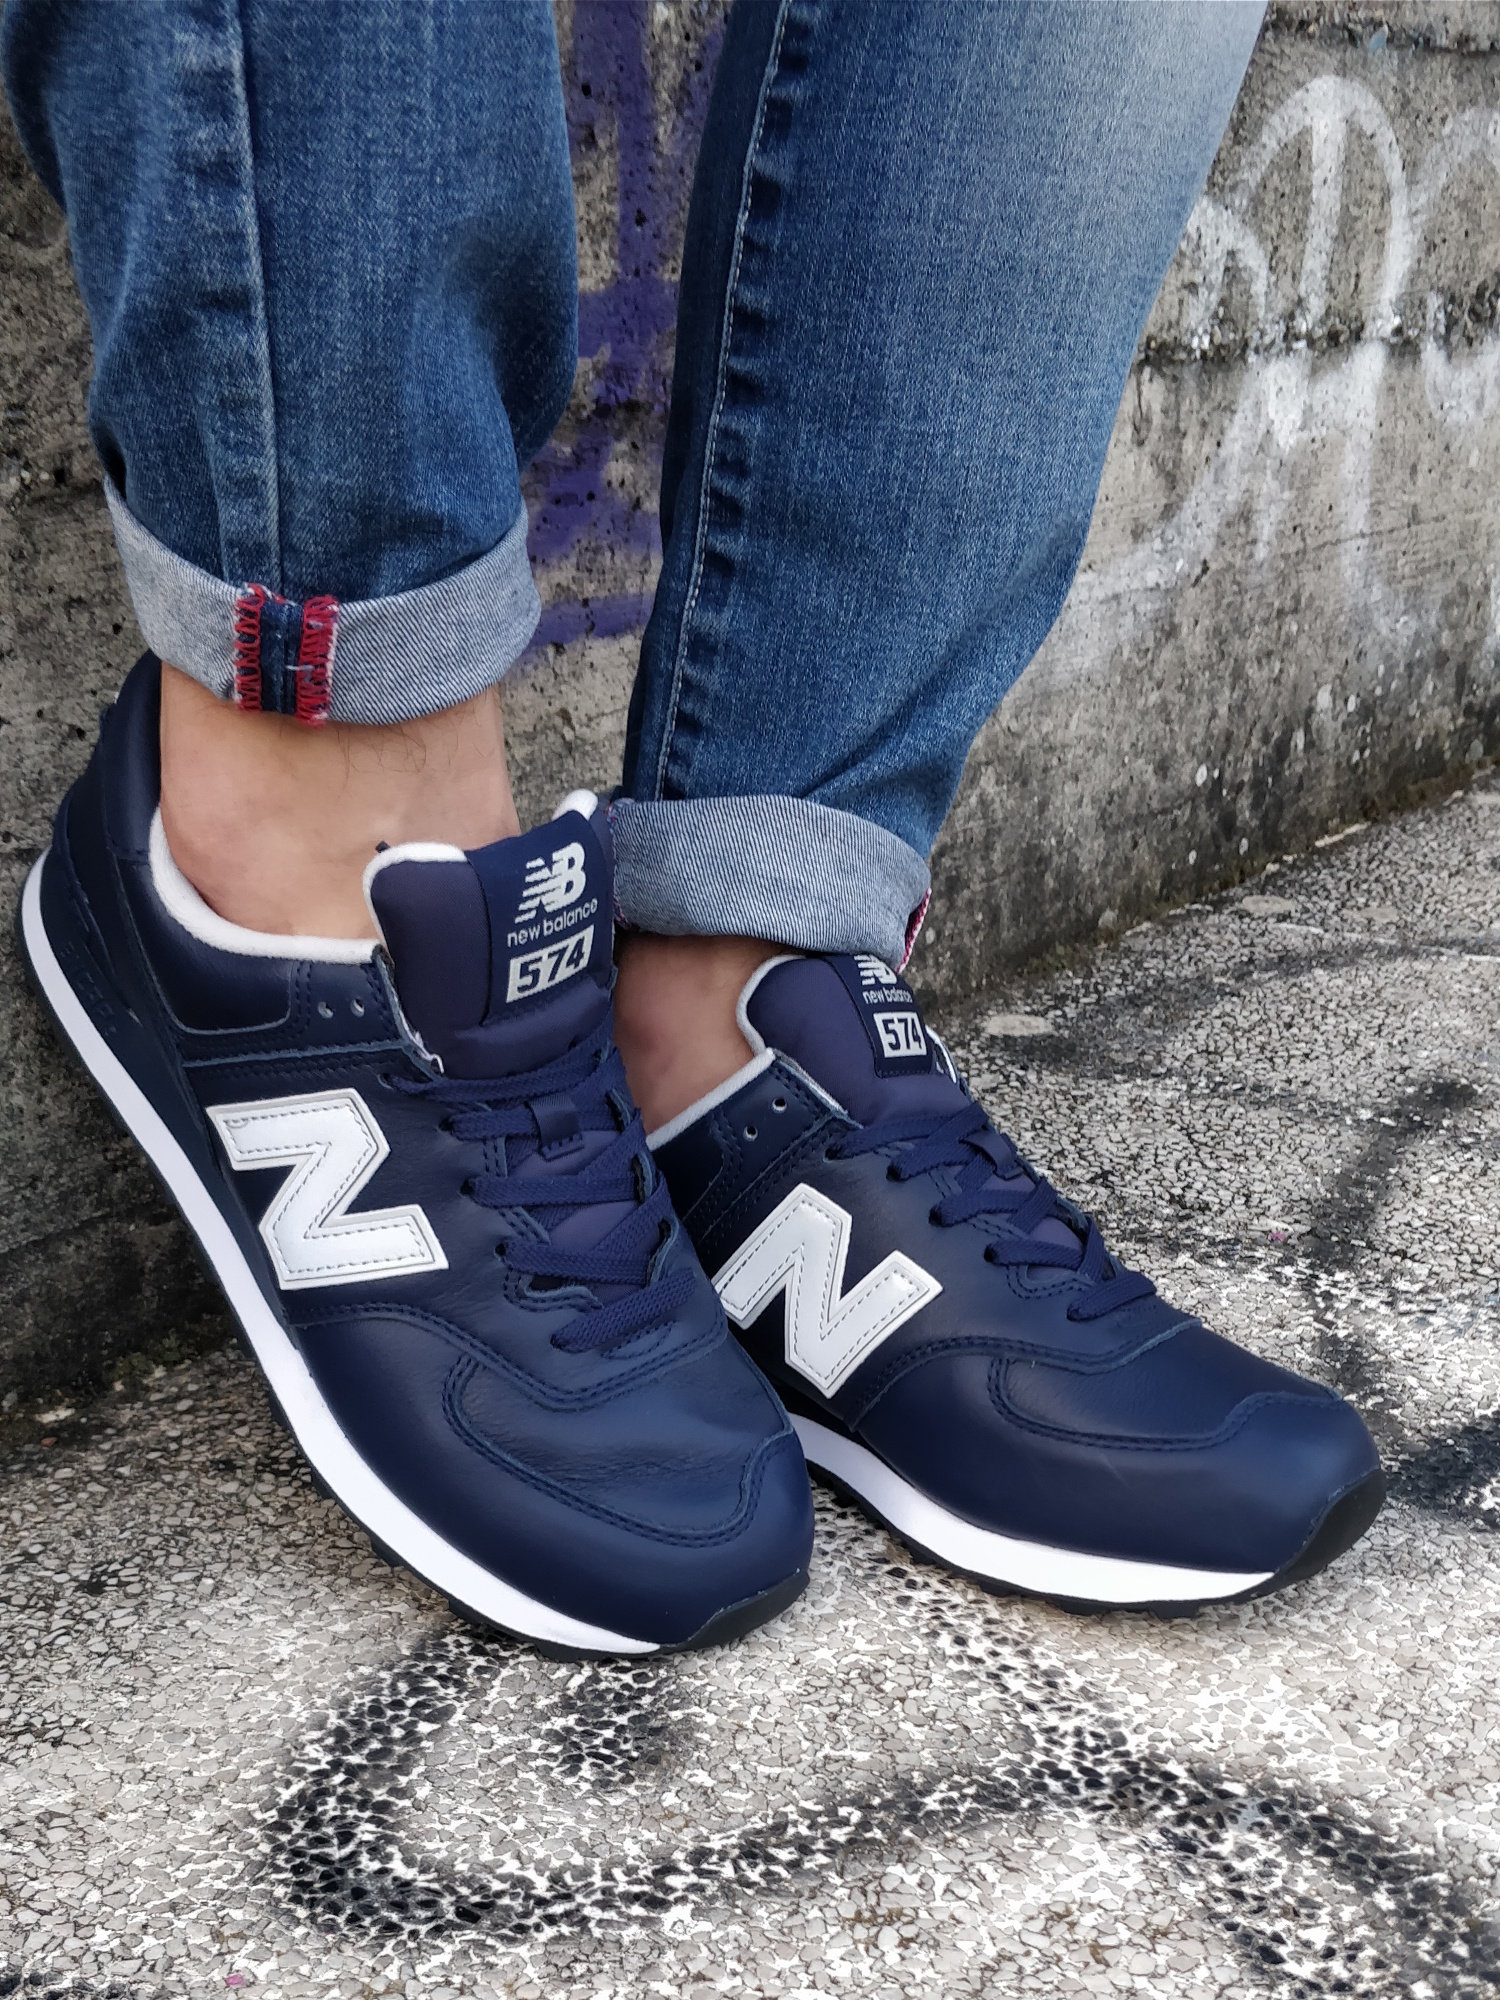 4c8aceff4d4 New Balance ML 574 lea Sneakers Shoes Sport Lifestyle Navy Real ...